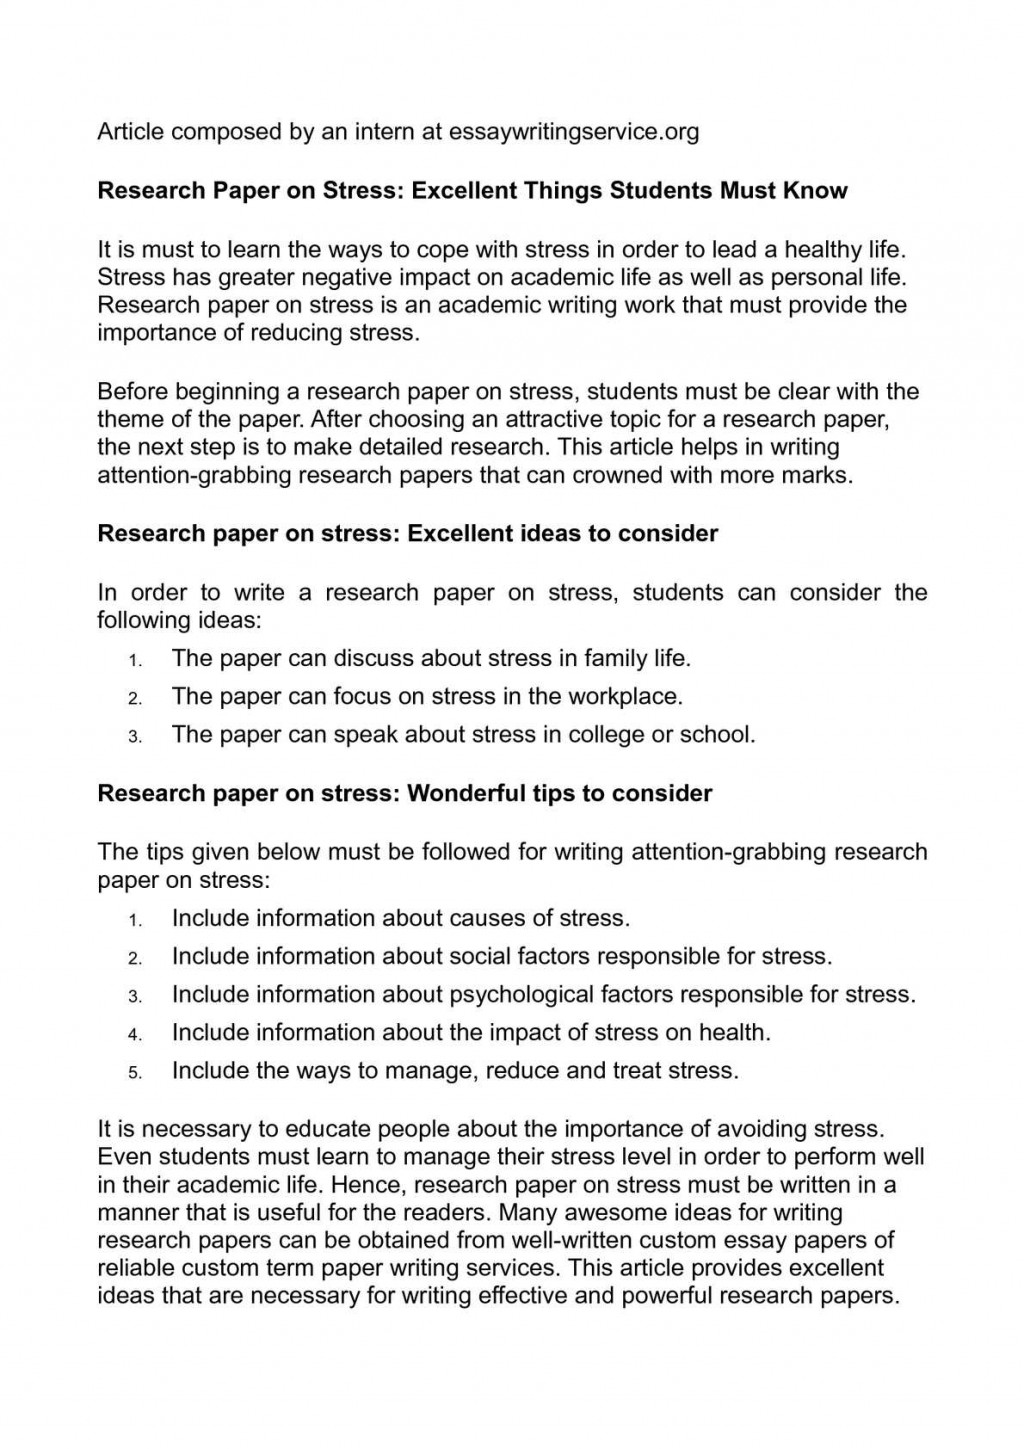 020 Ideas To Write Research Paper On Dreaded A Good Large